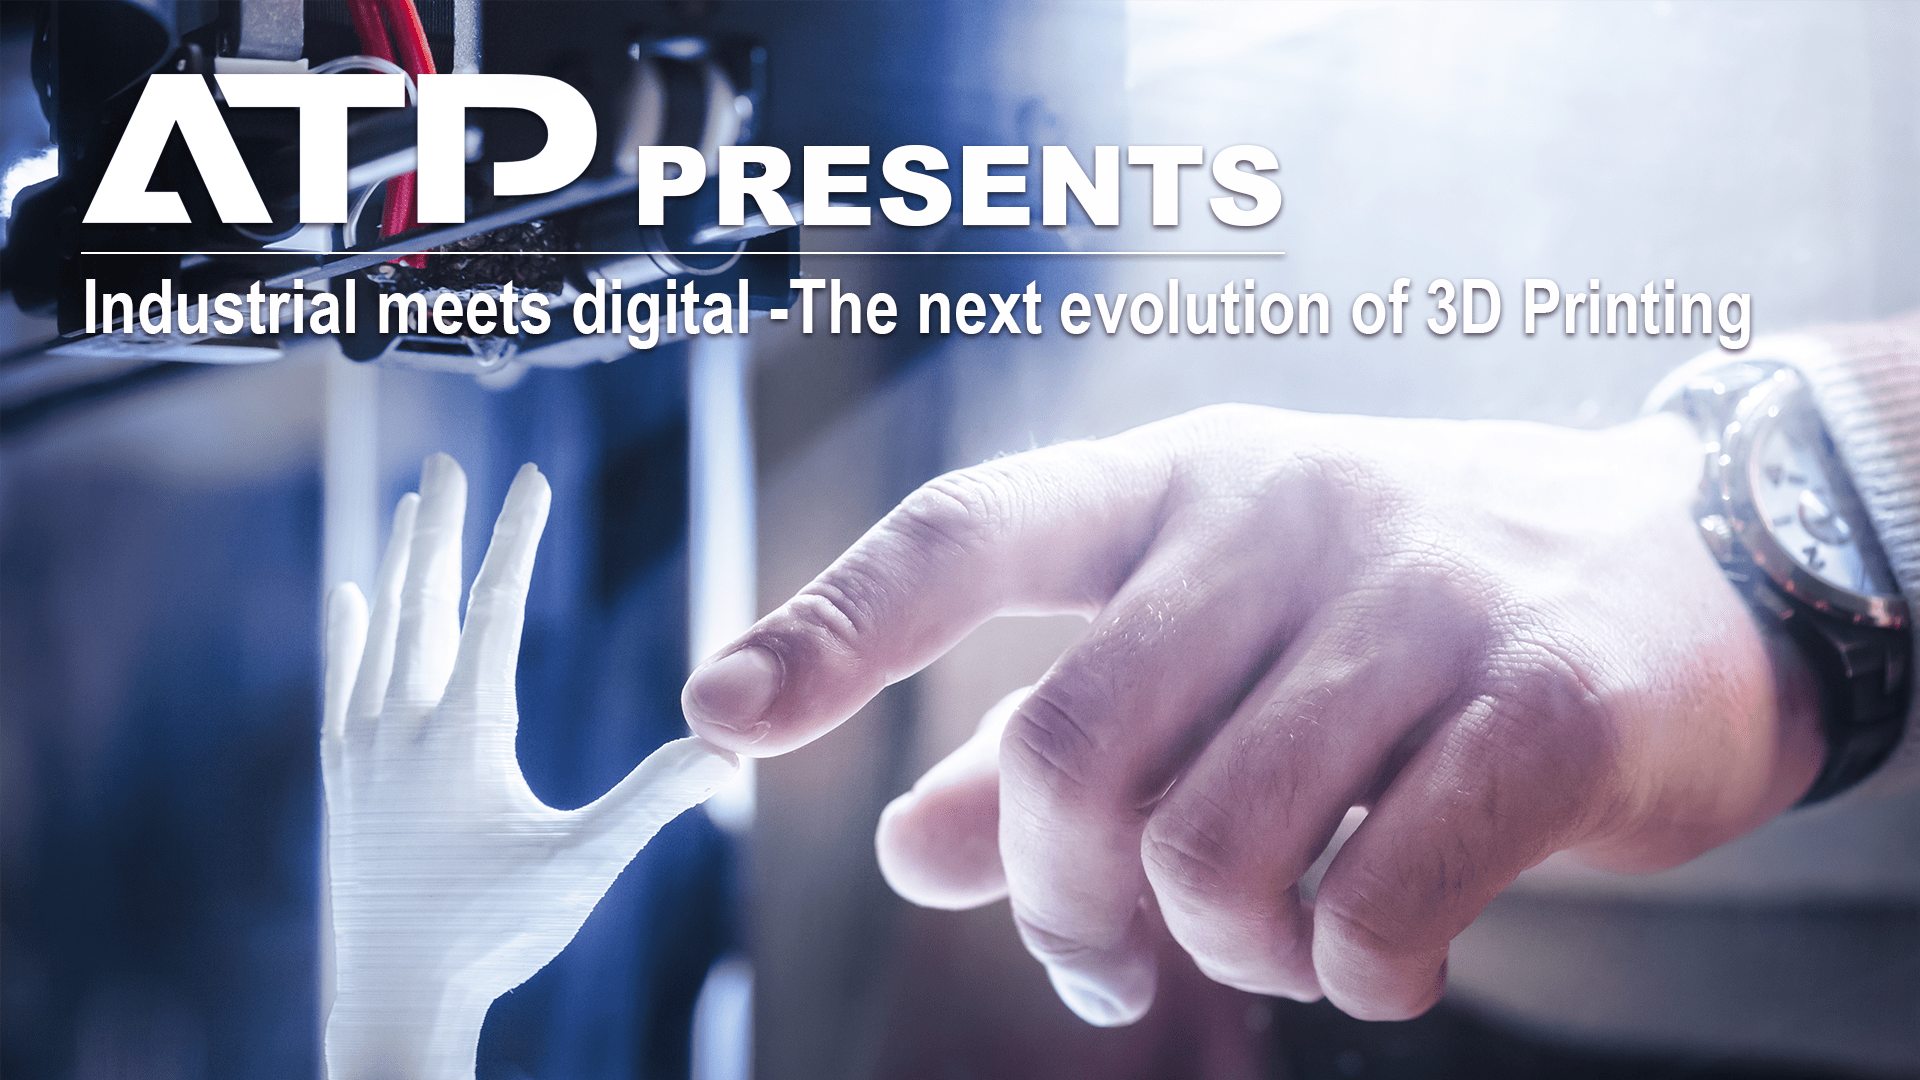 Industrial Meets Digital - The Next Evolution of 3D Printing